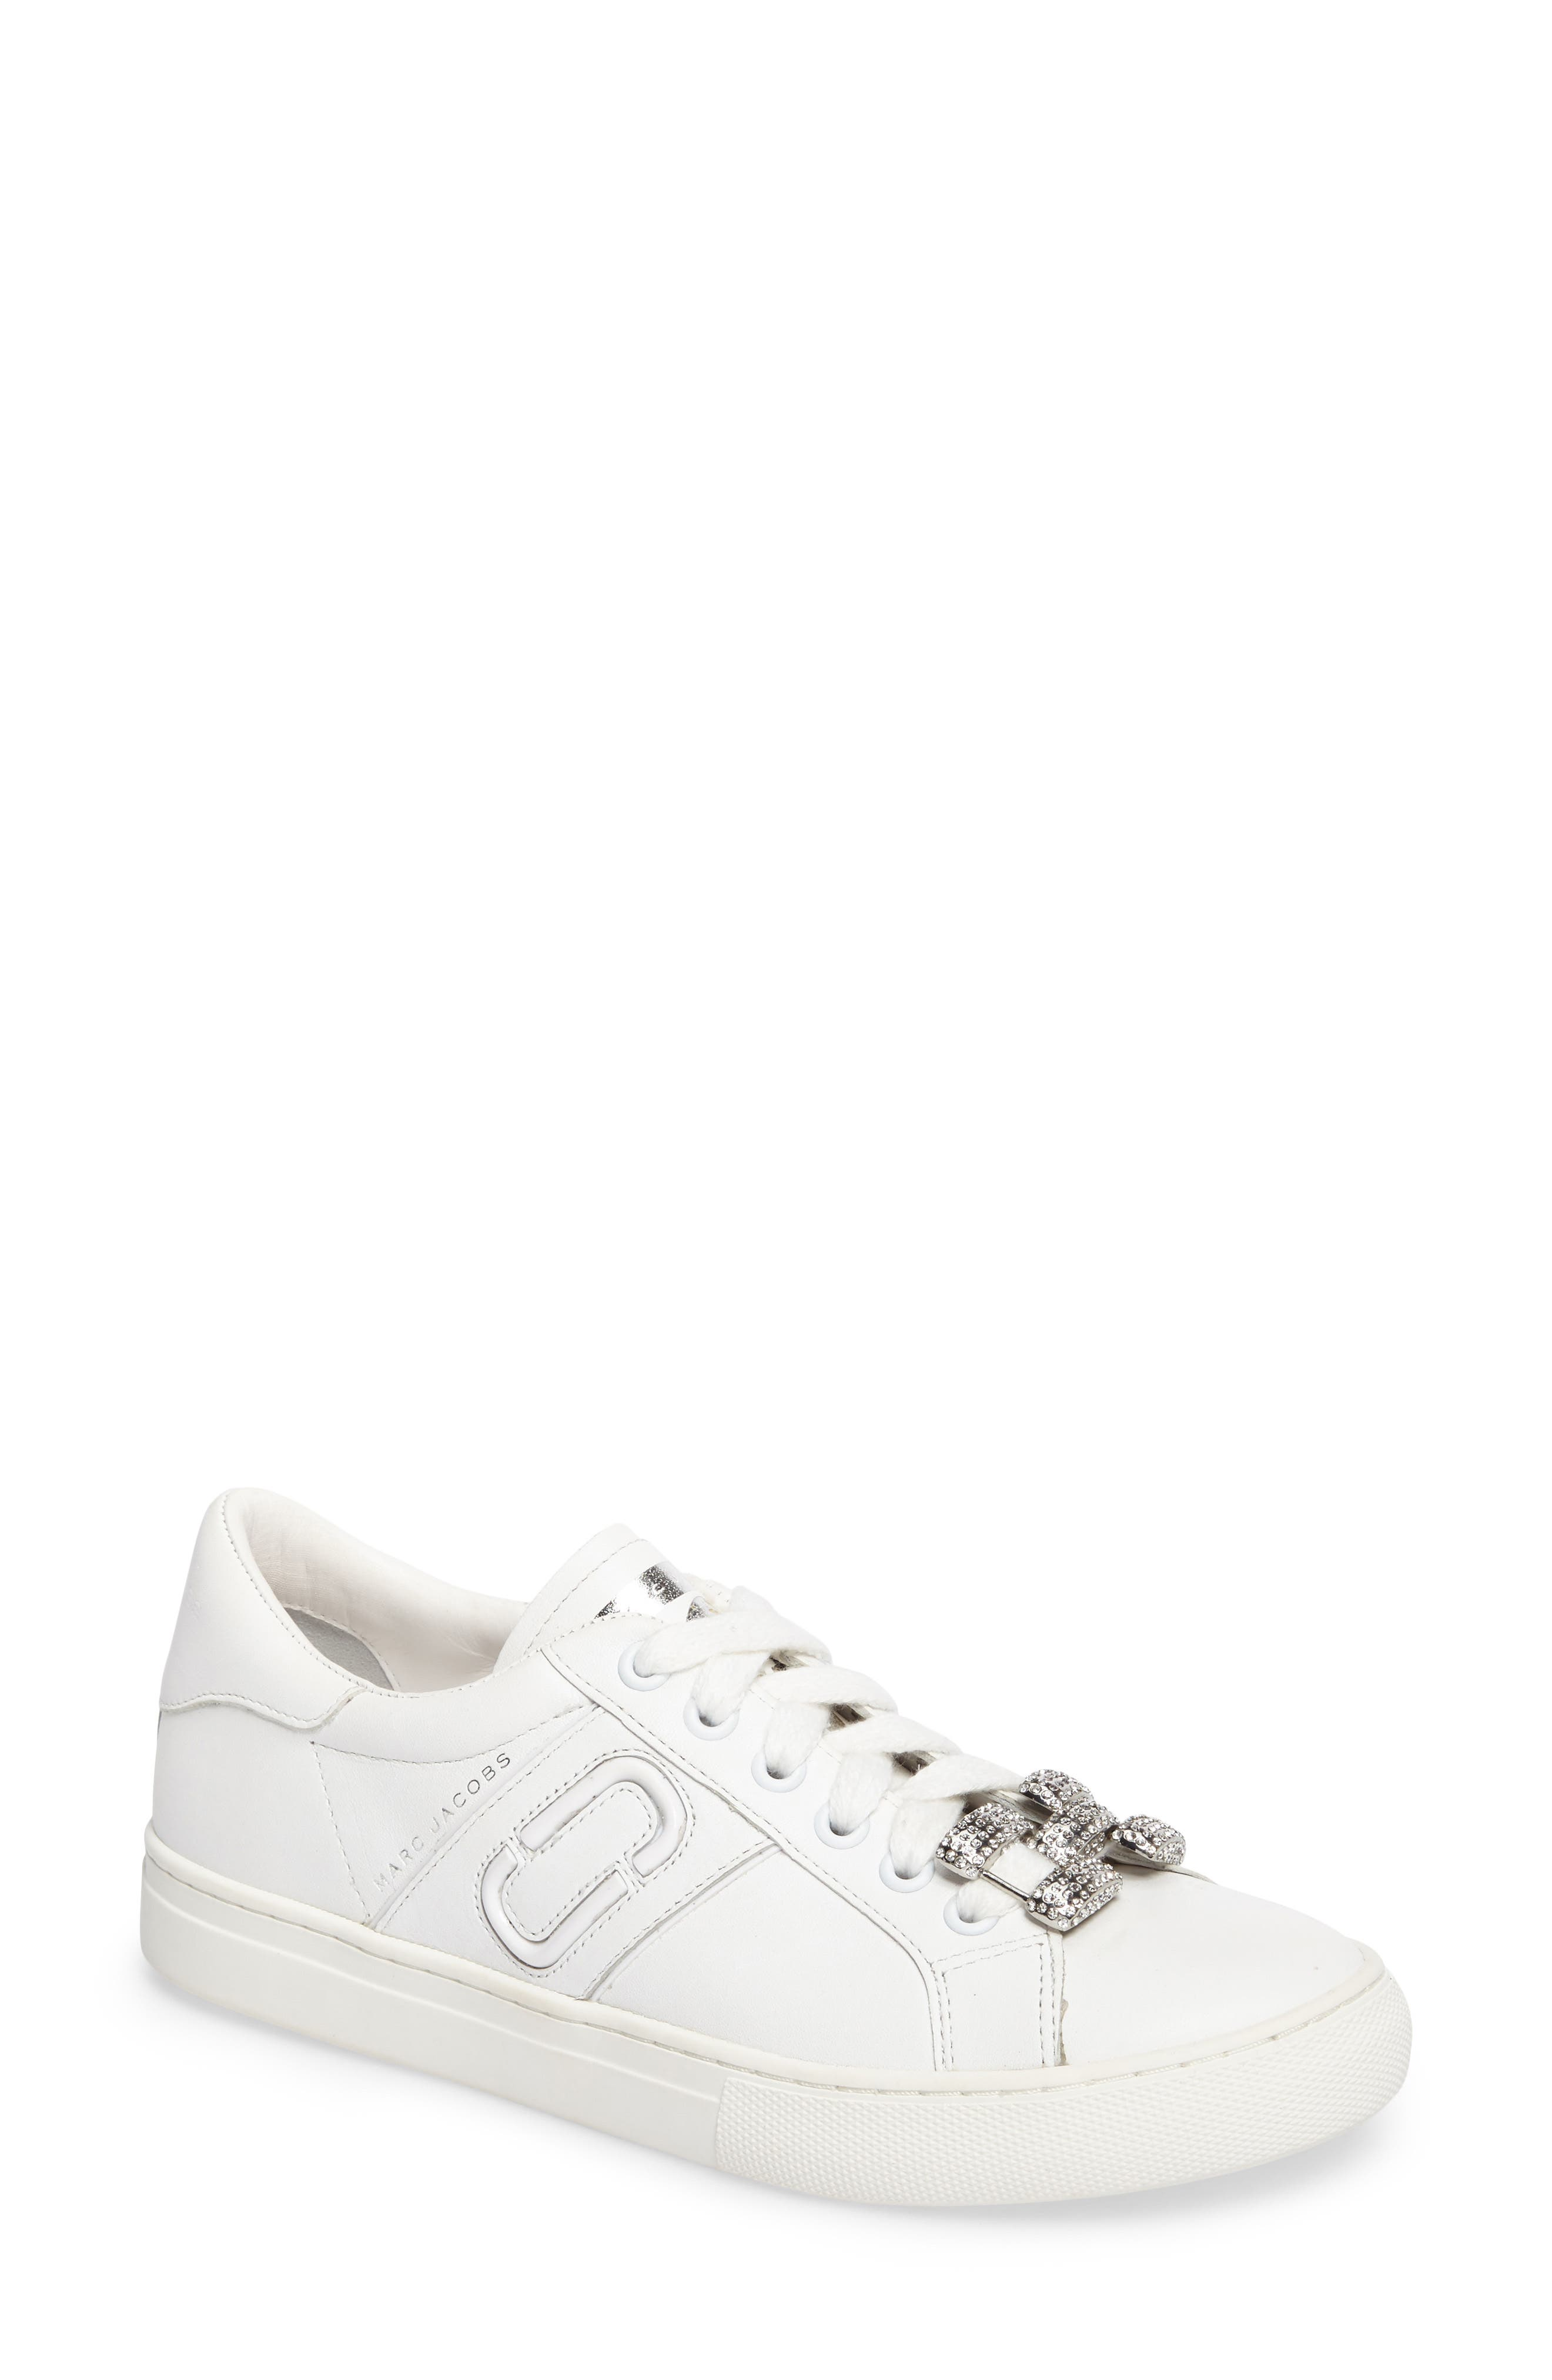 Main Image - MARC JACOBS Empire Chain Link Sneaker (Women)